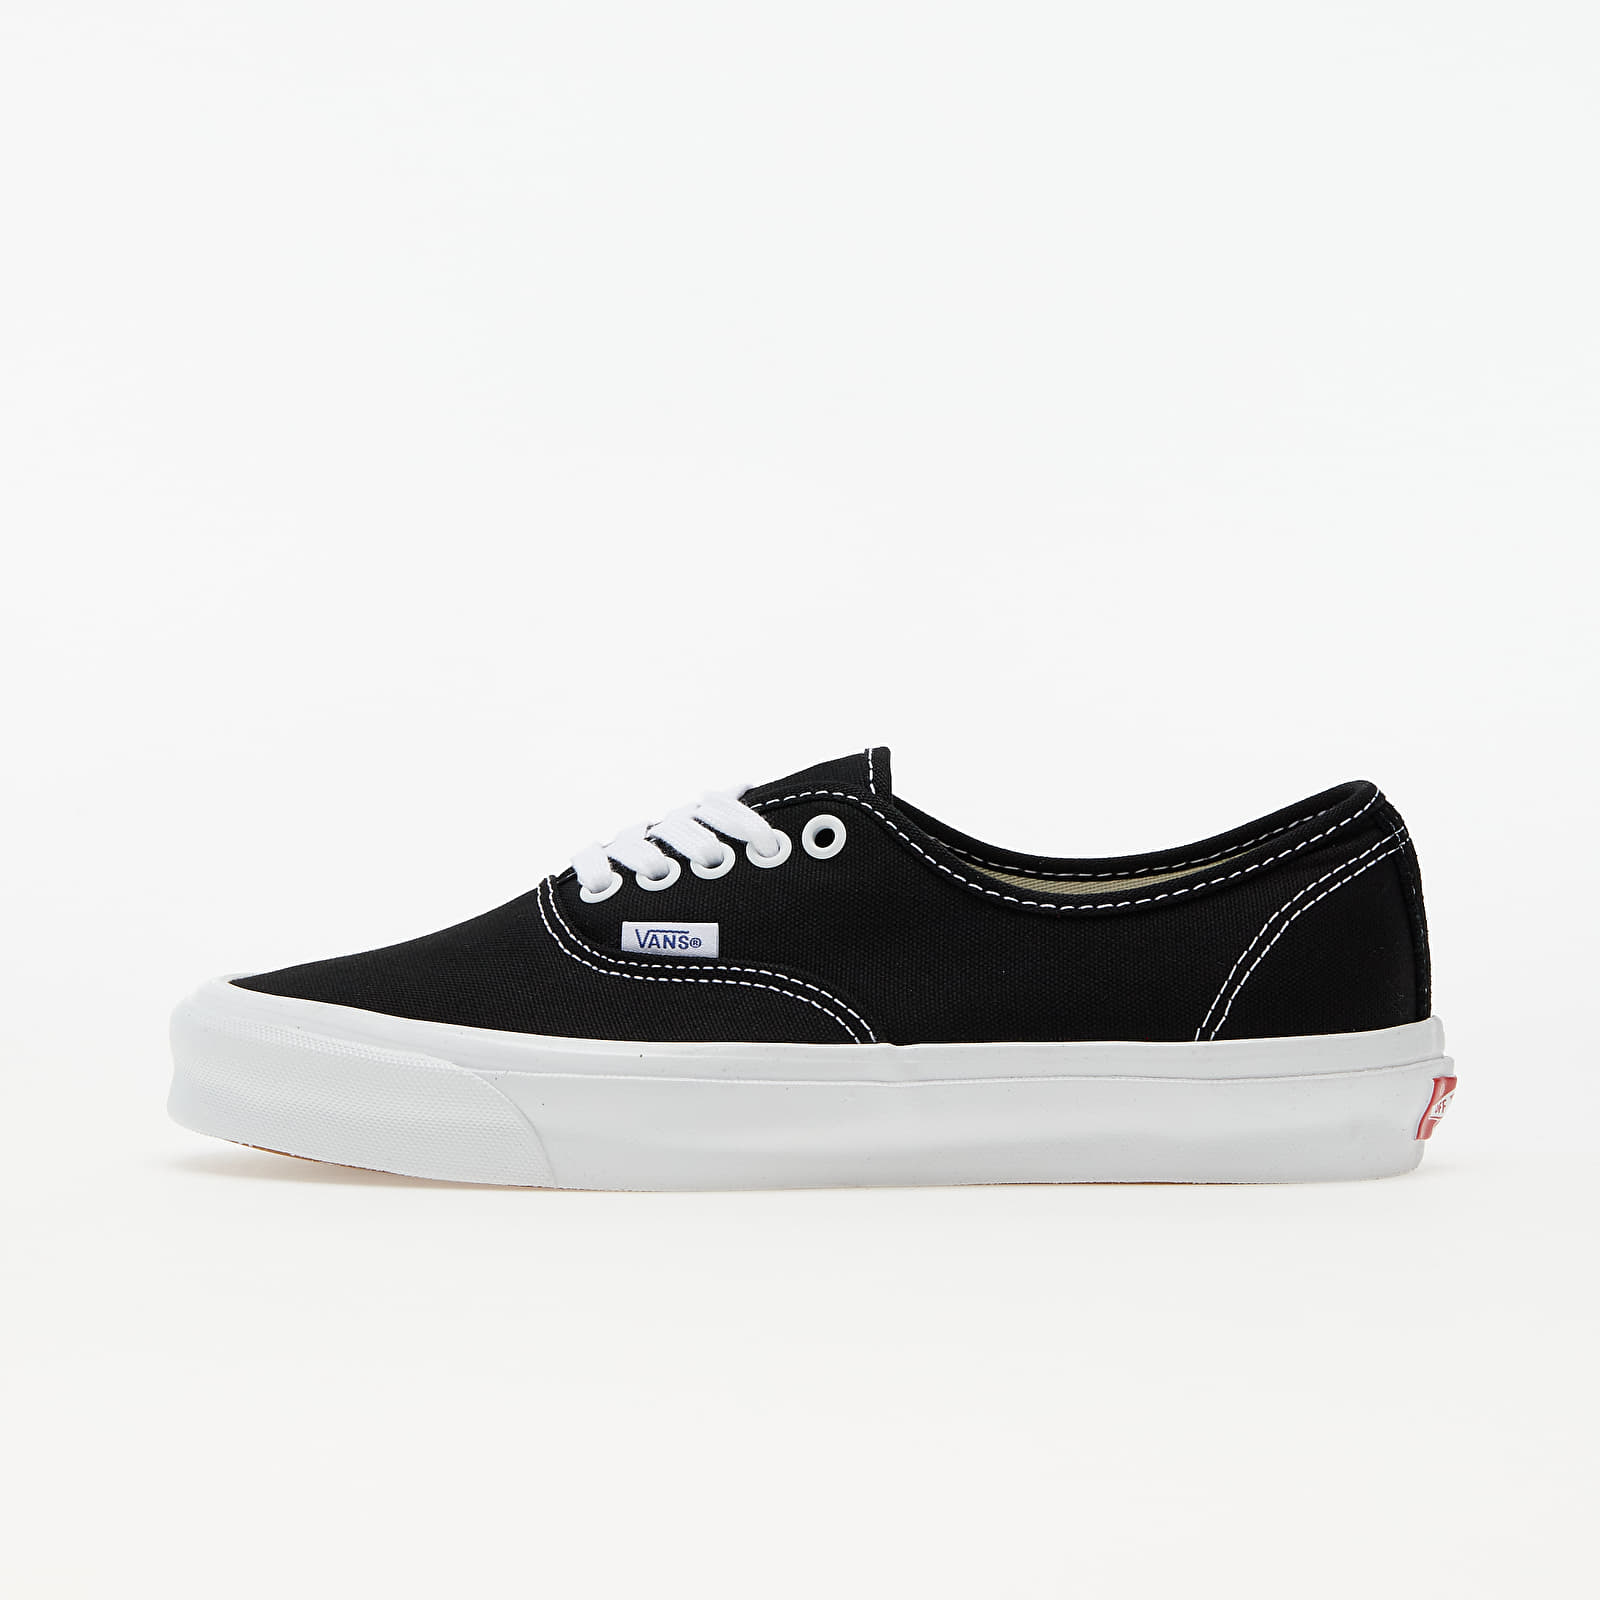 Vans OG Authentic LX (Canvas) Black/ True White EUR 42.5